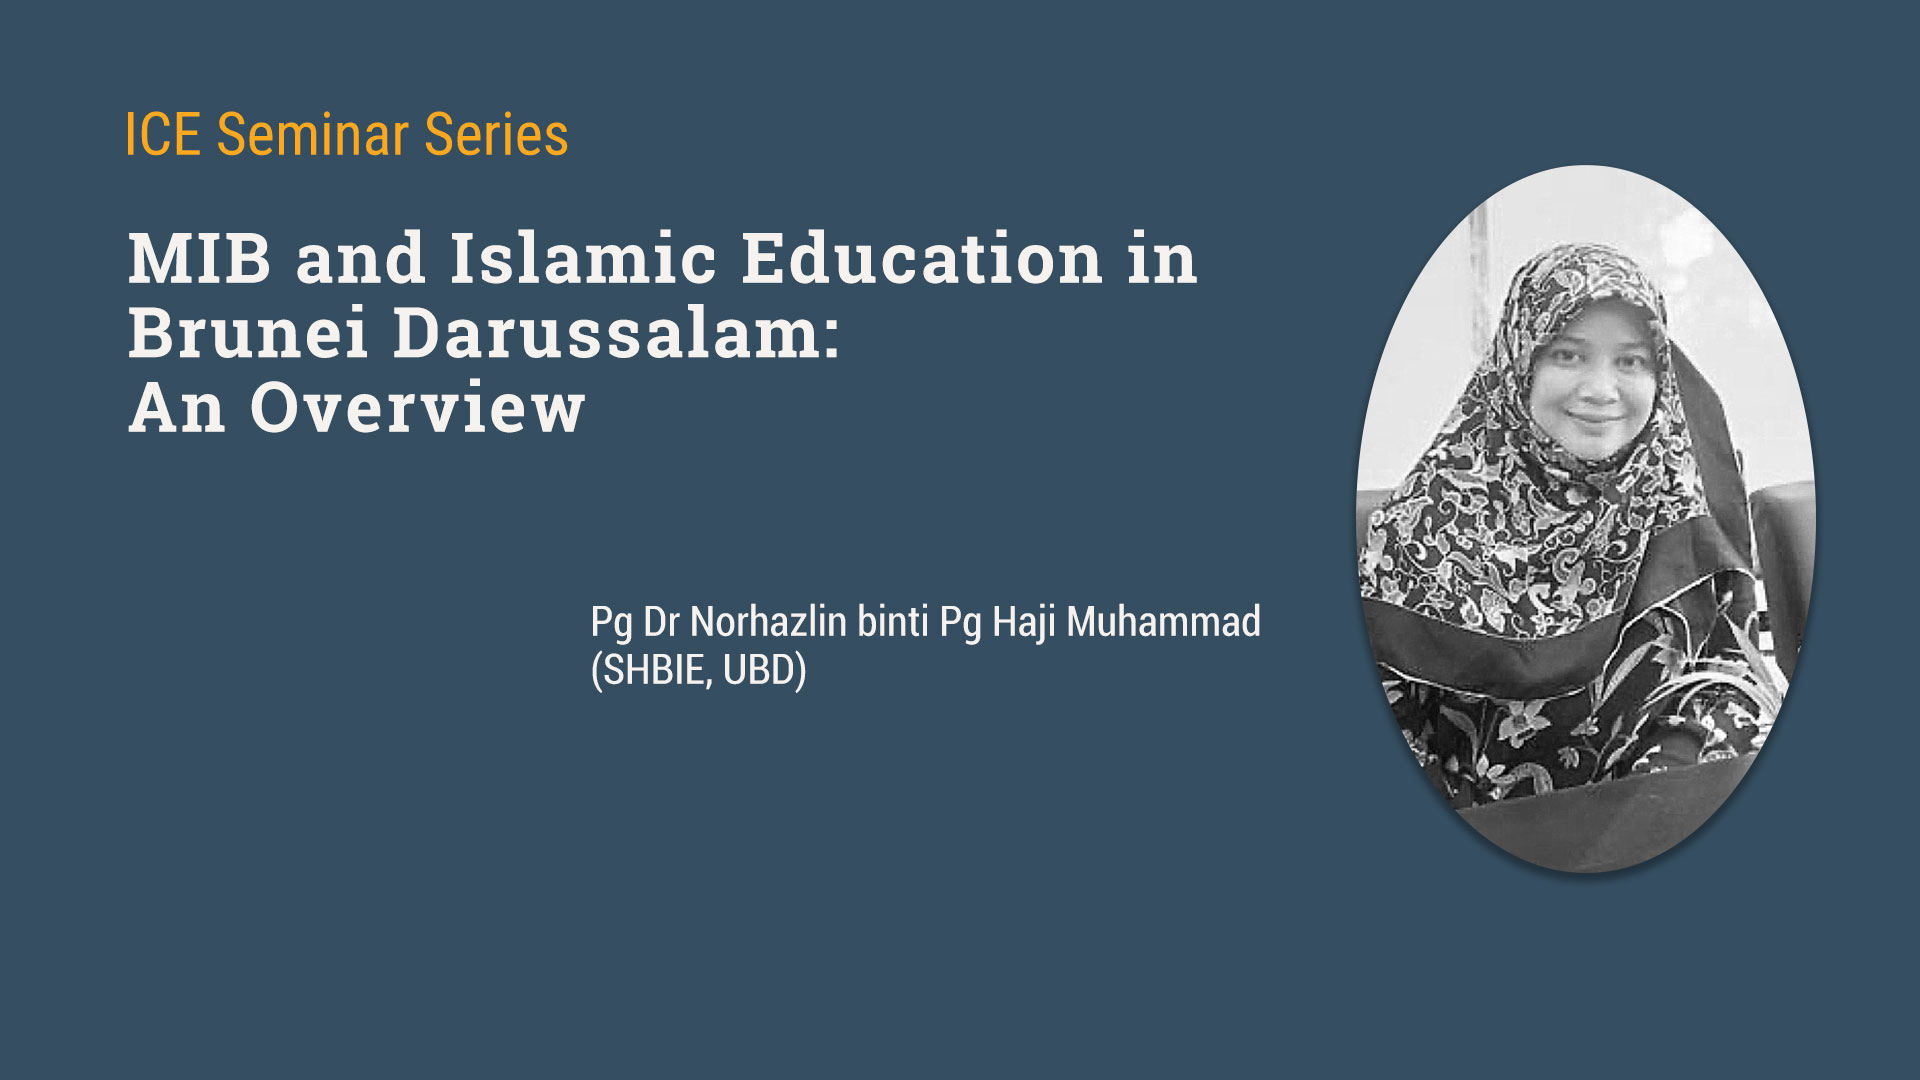 Seminar on MIB and Islamic Education in Brunei Darussalam